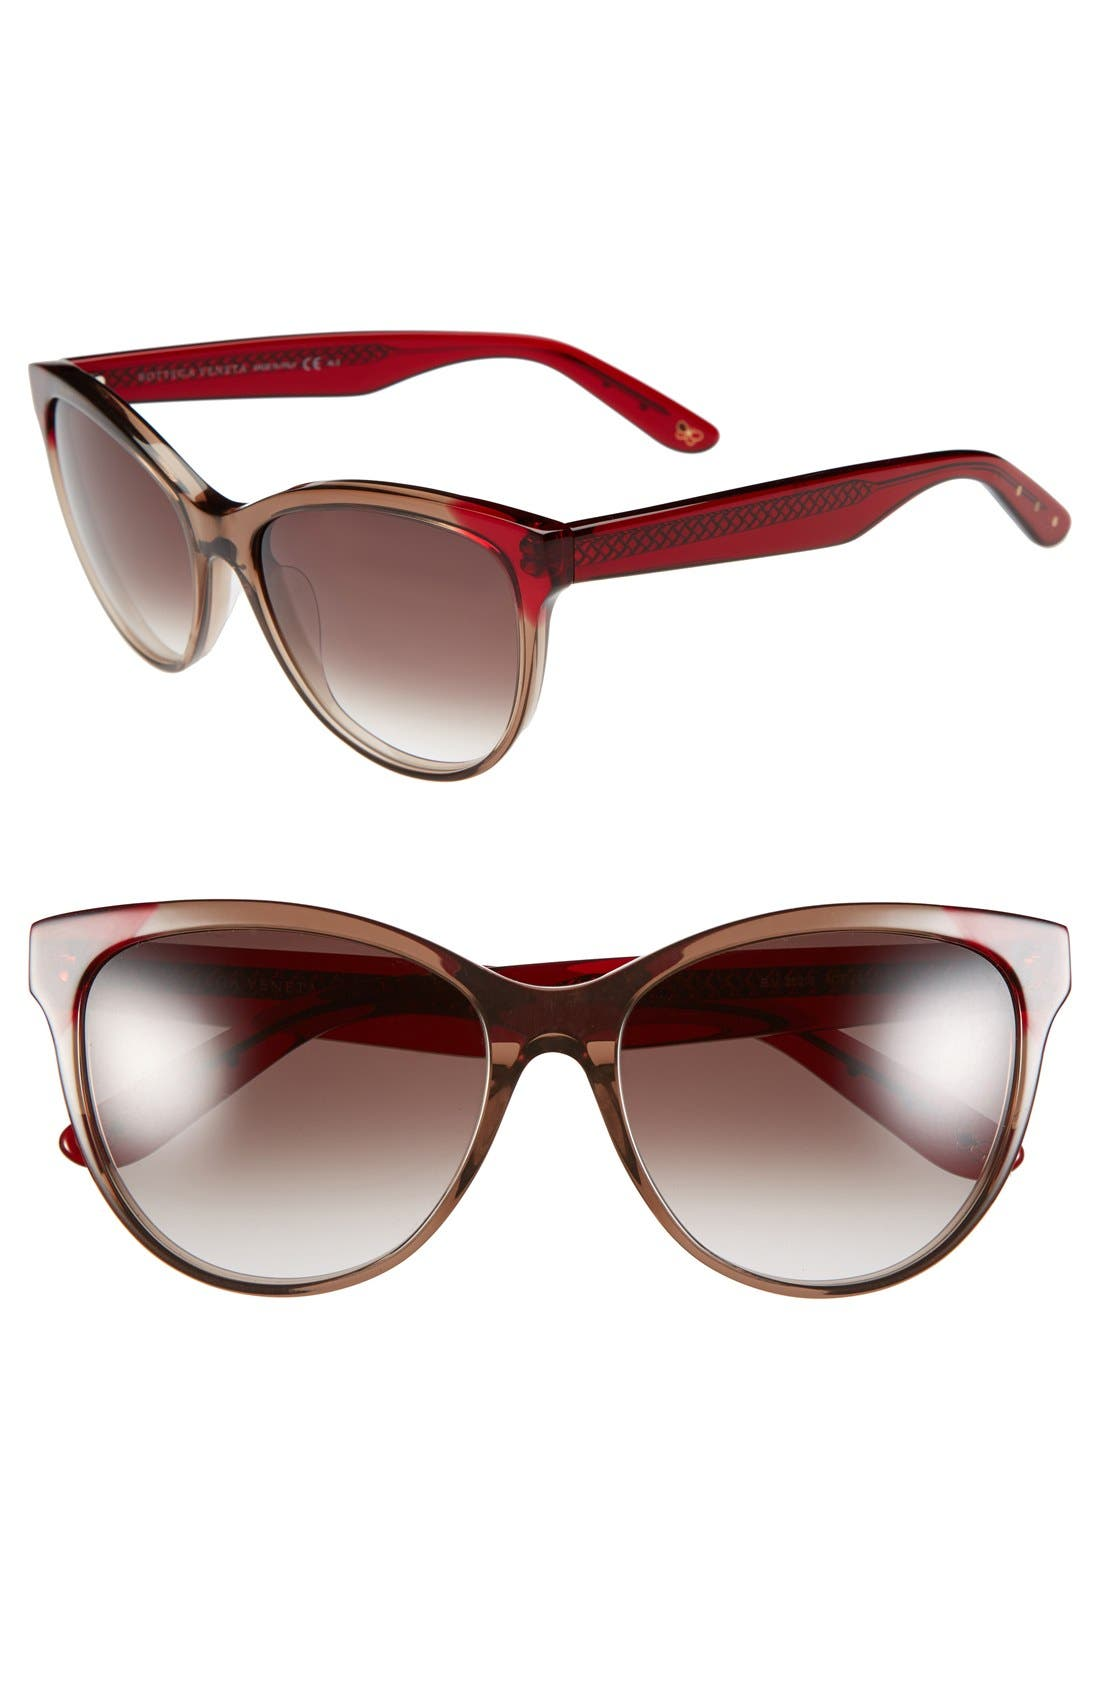 Main Image - Bottega Veneta 56mm Retro Gradient Lens Sunglasses